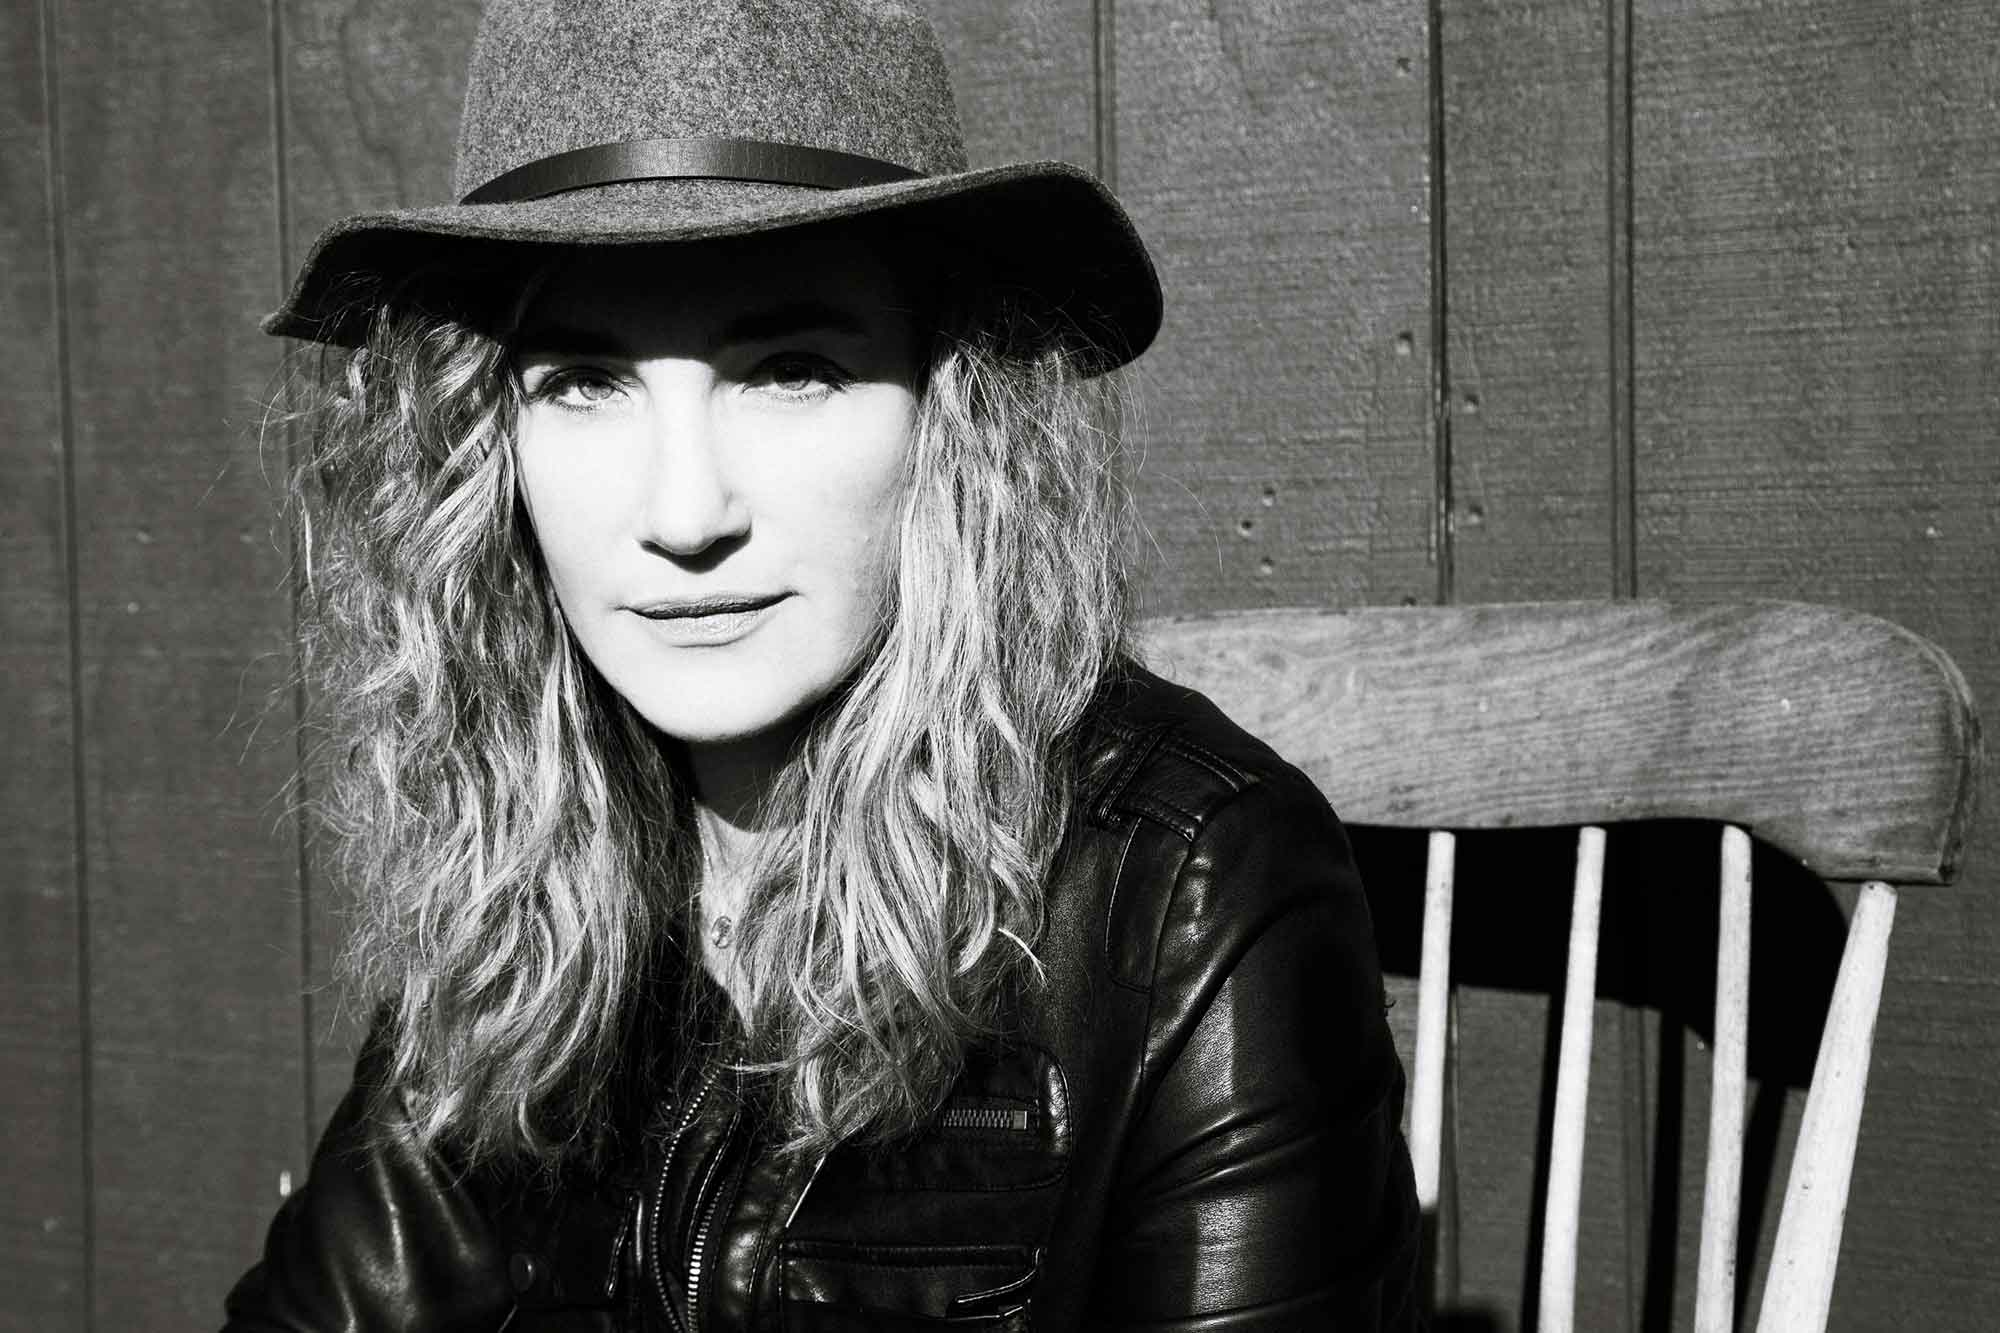 Elizabeth Erin Kemler, the New York Cowgirl and her latest album The Weight of Mortal Skin